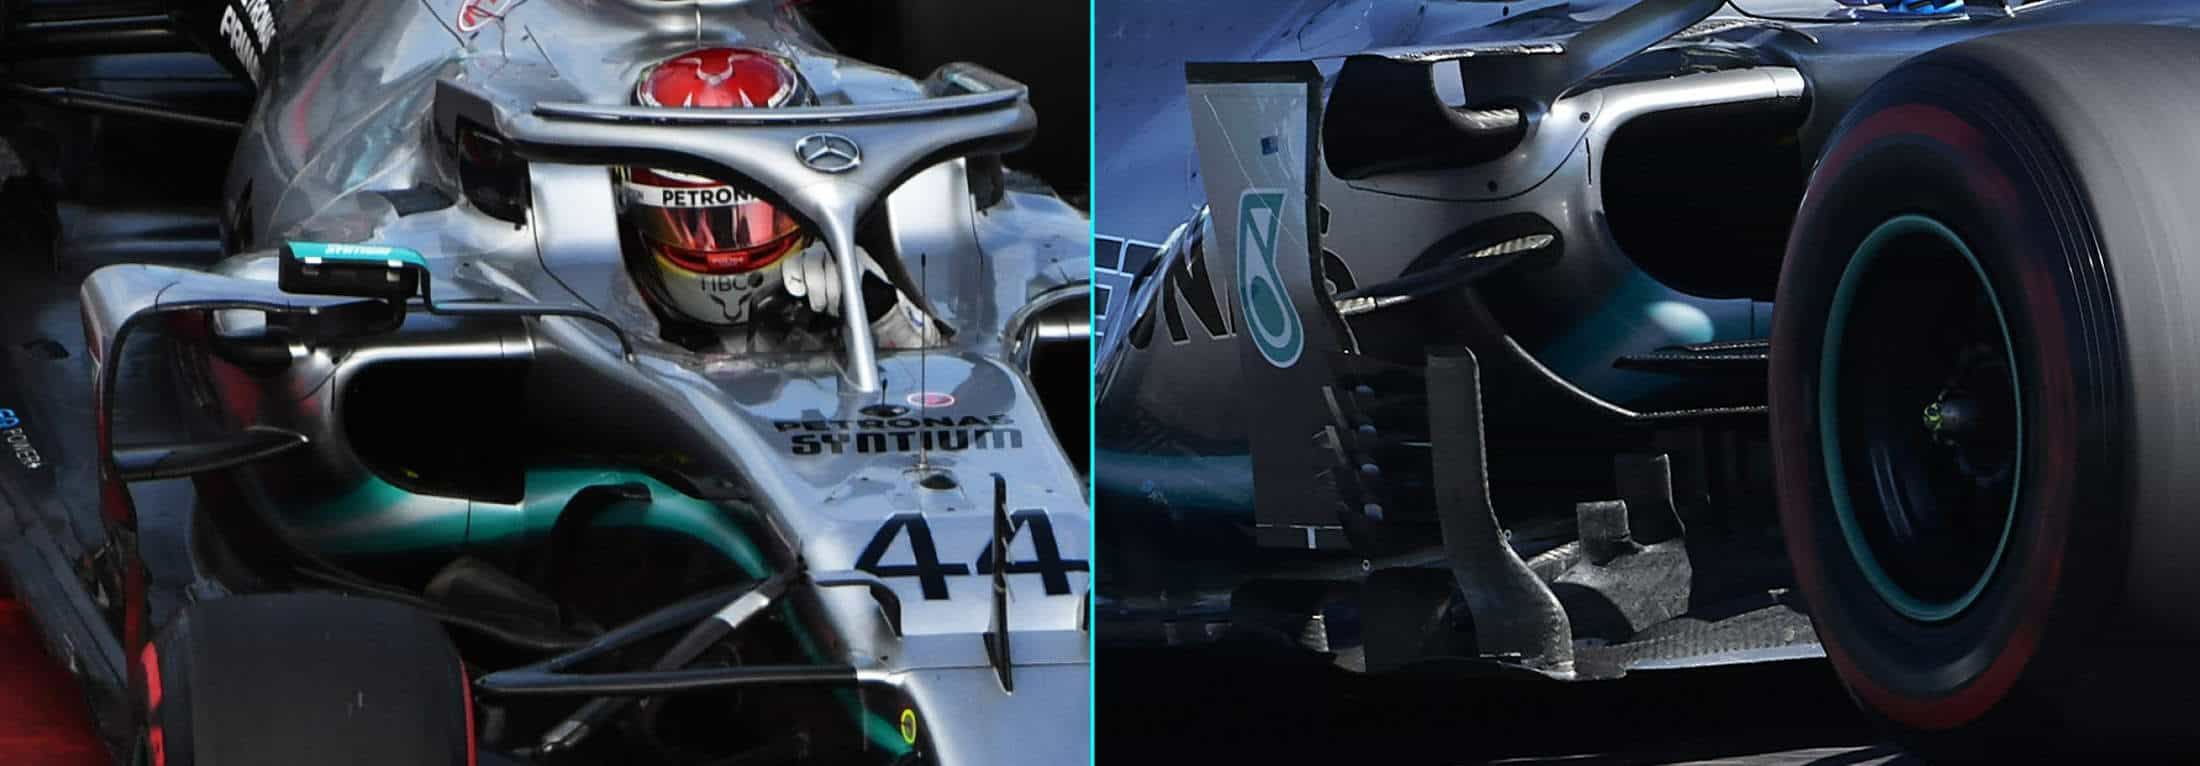 2019 Mercedes F1 W10 Russian vs Japanese GP sidepod wings Photos Daimler EditedBy MAXF1net